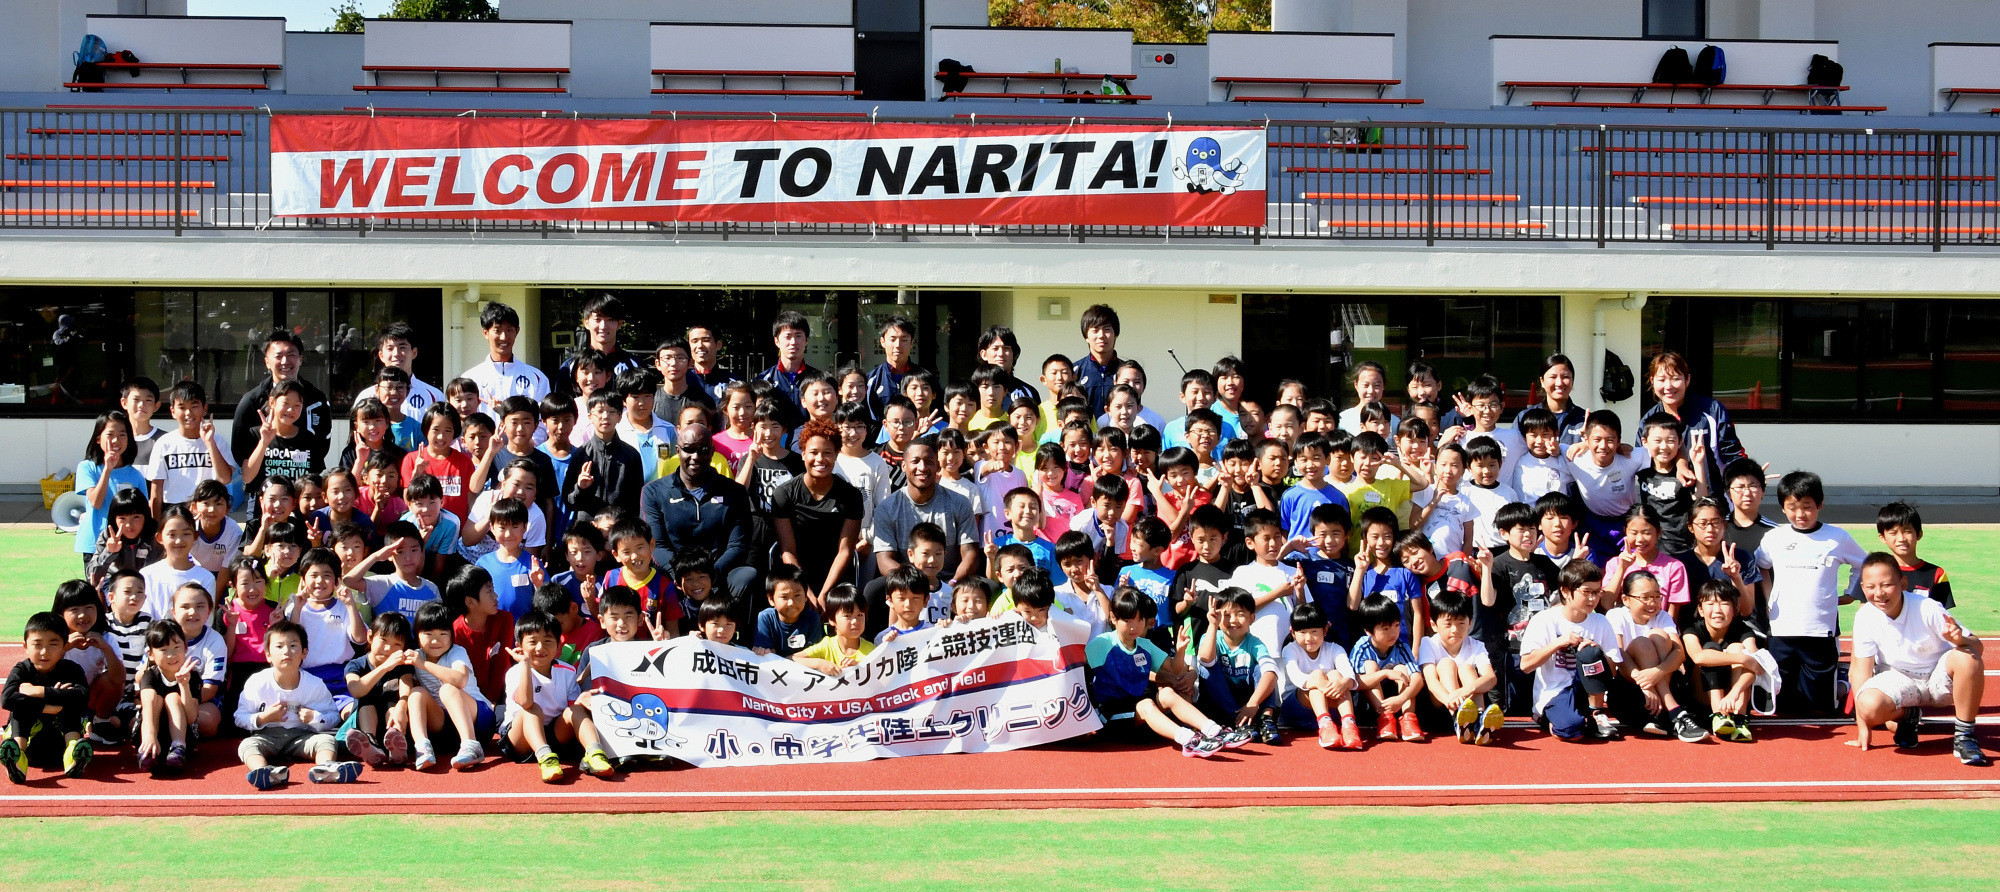 Narita is set to host a training camp for America's track and field team before the 2020 Olympic Games in Tokyo ©Twitter